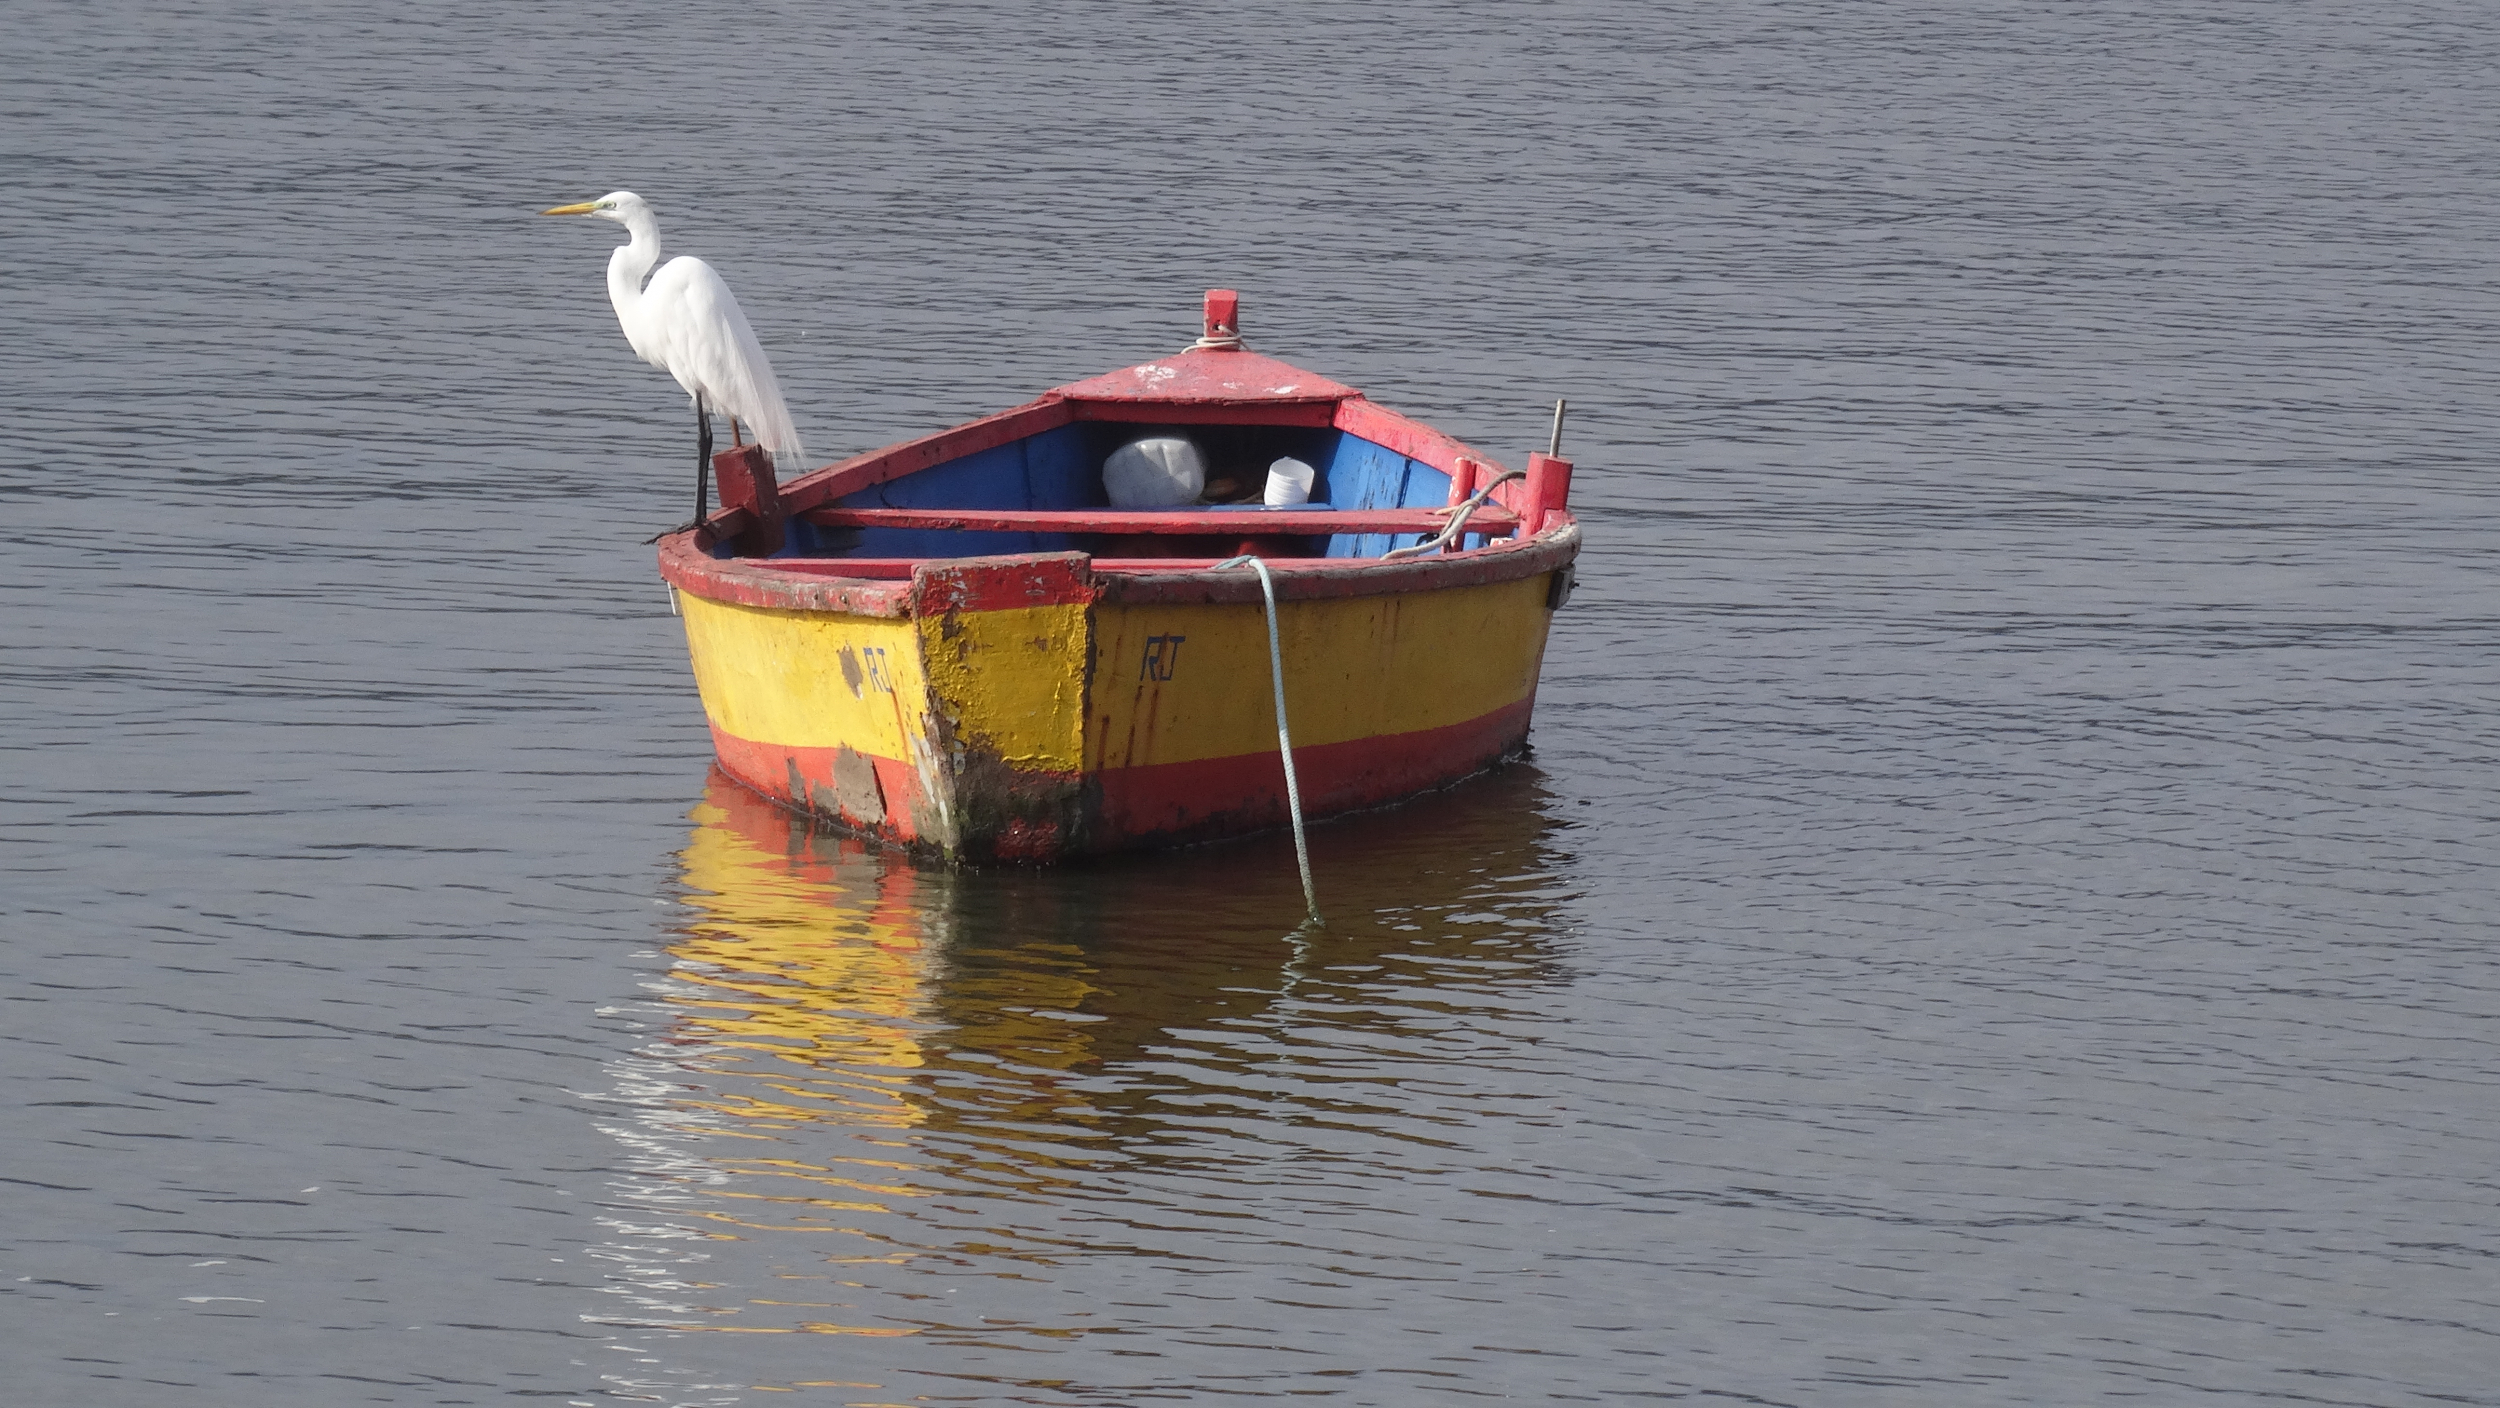 15. Fishing boat and Great Egret